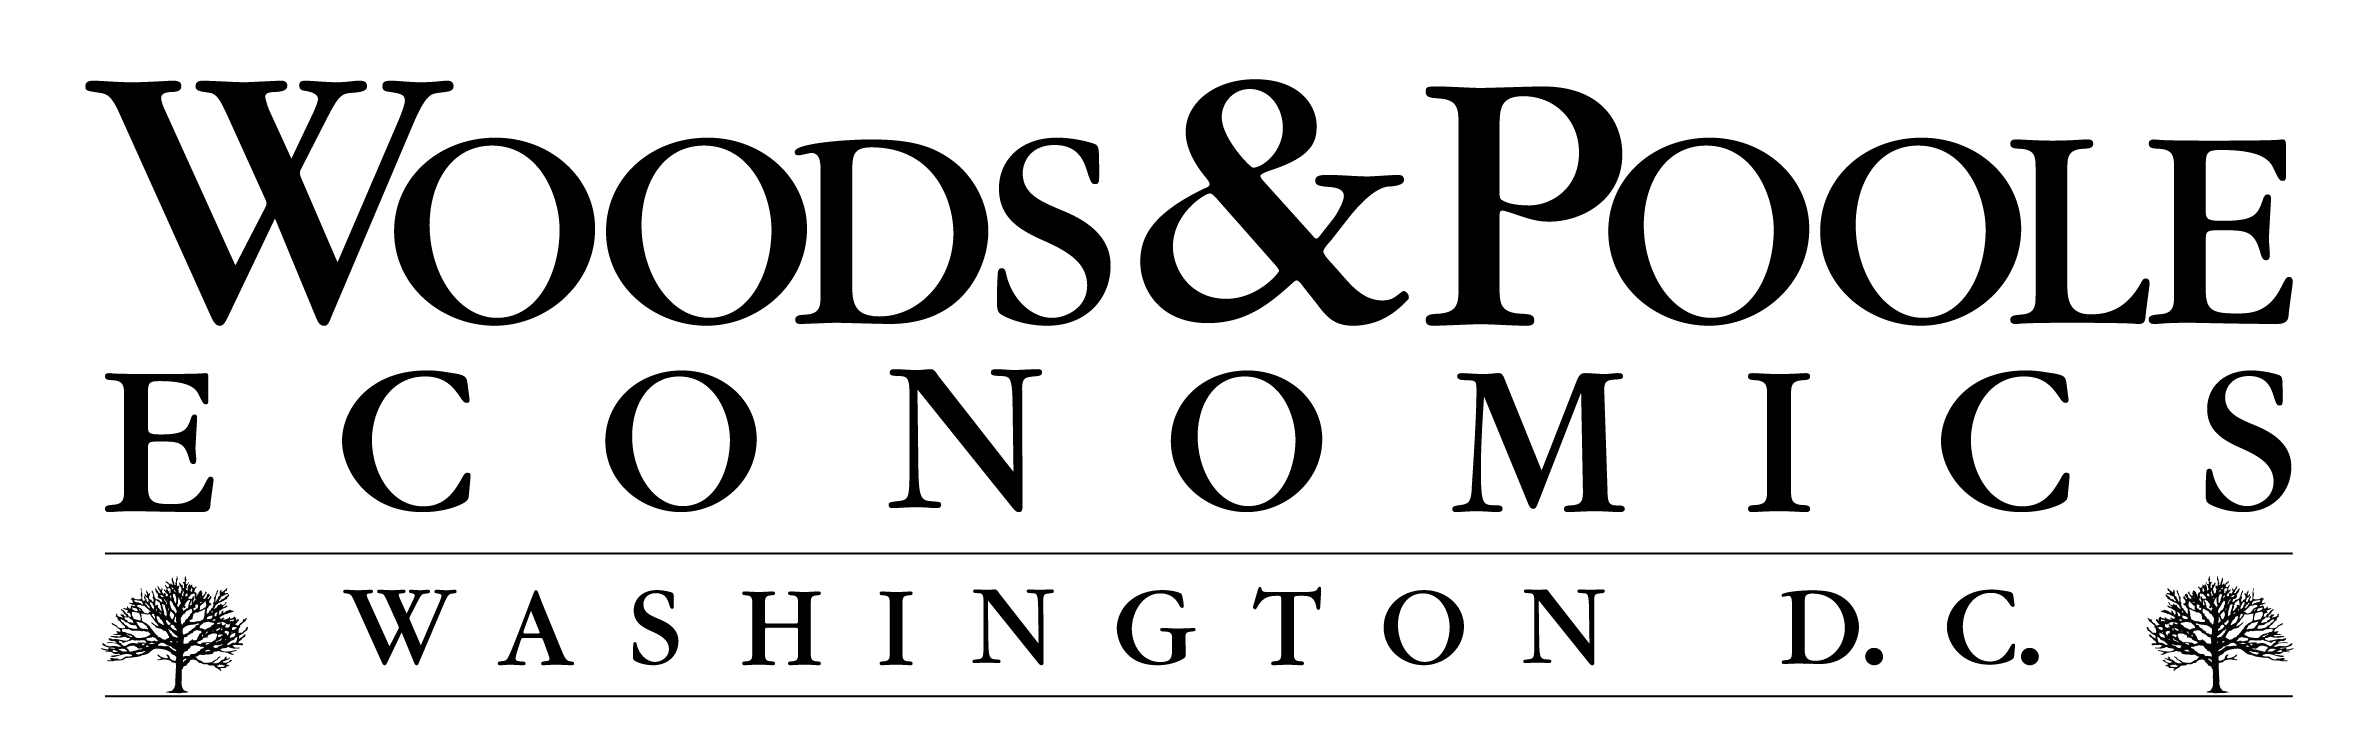 DALLAS-FORT WORTH-ARLINGTON TX (FIPS 19100) | Woods & Poole Economics, Inc